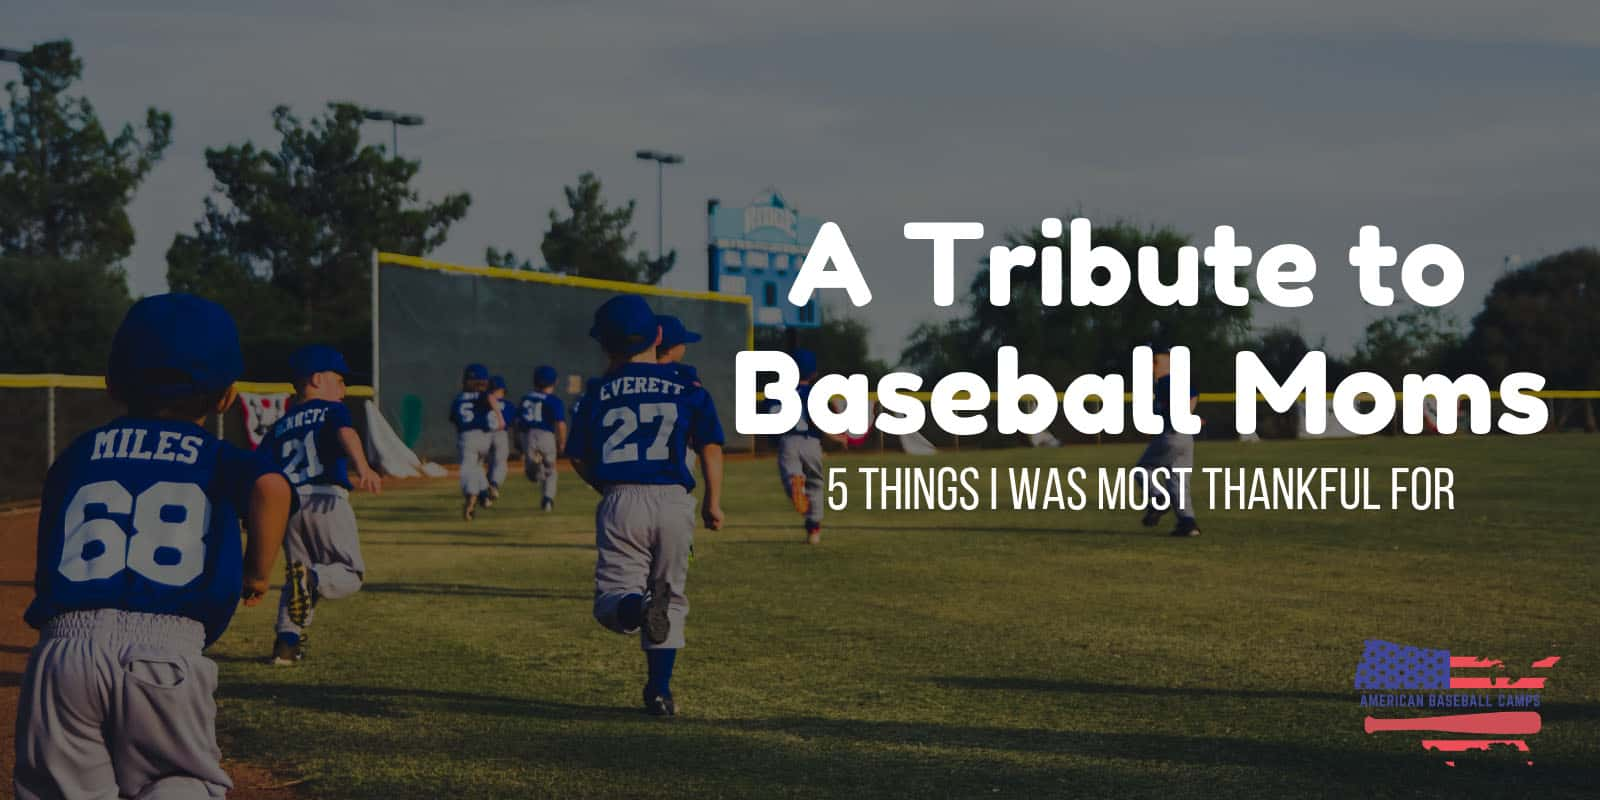 A TRIBUTE TO BASEBALL MOMS — 5 Things I Was Most Thankful For